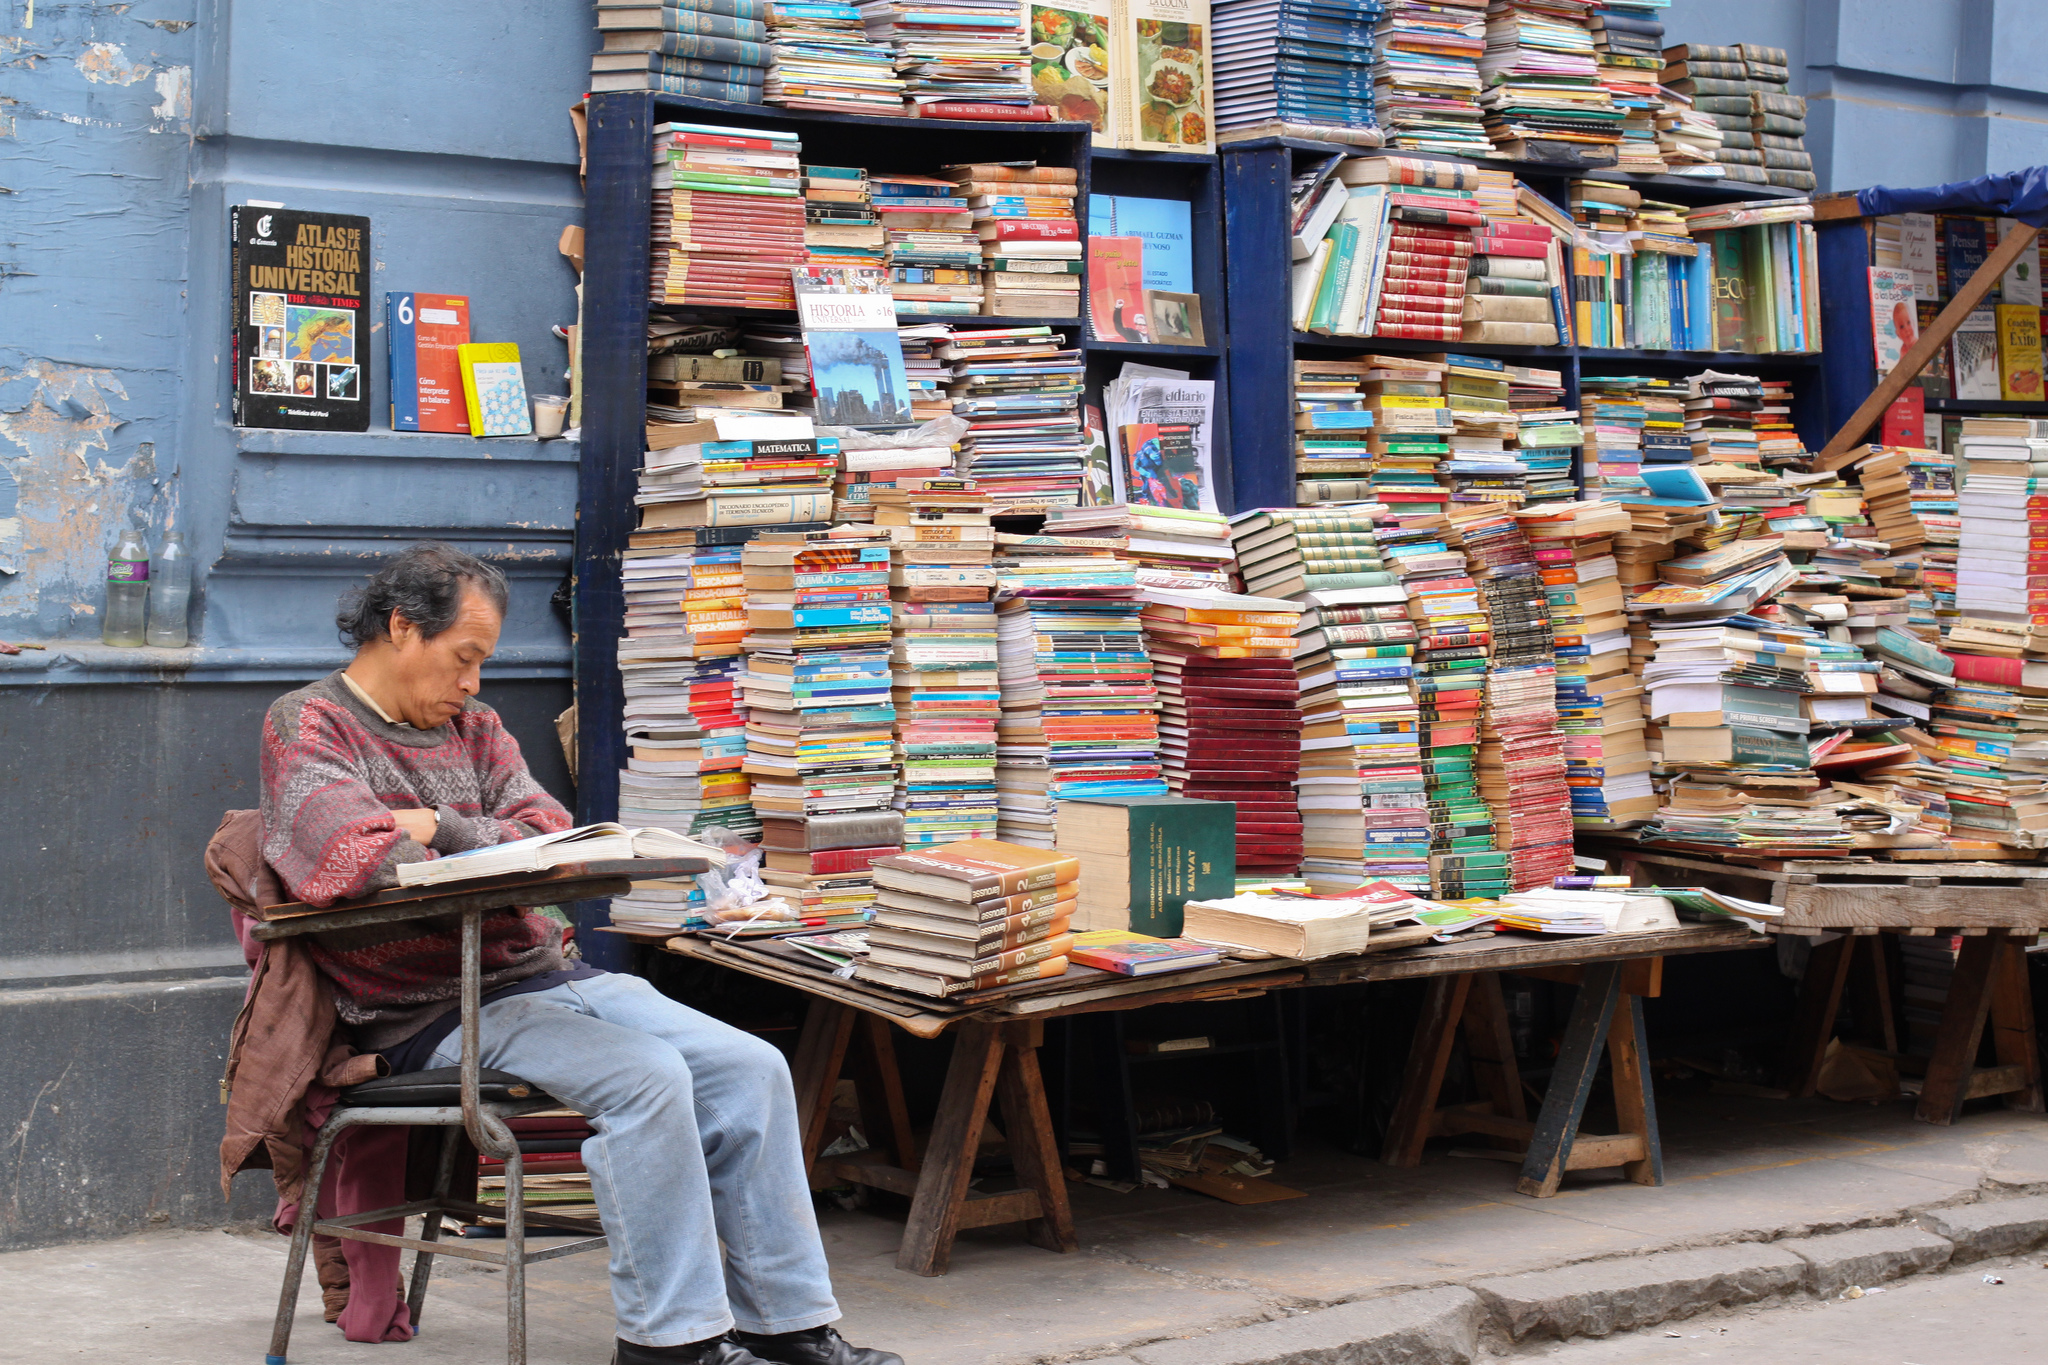 Man Asleep at a desk in front of piles of books on the street